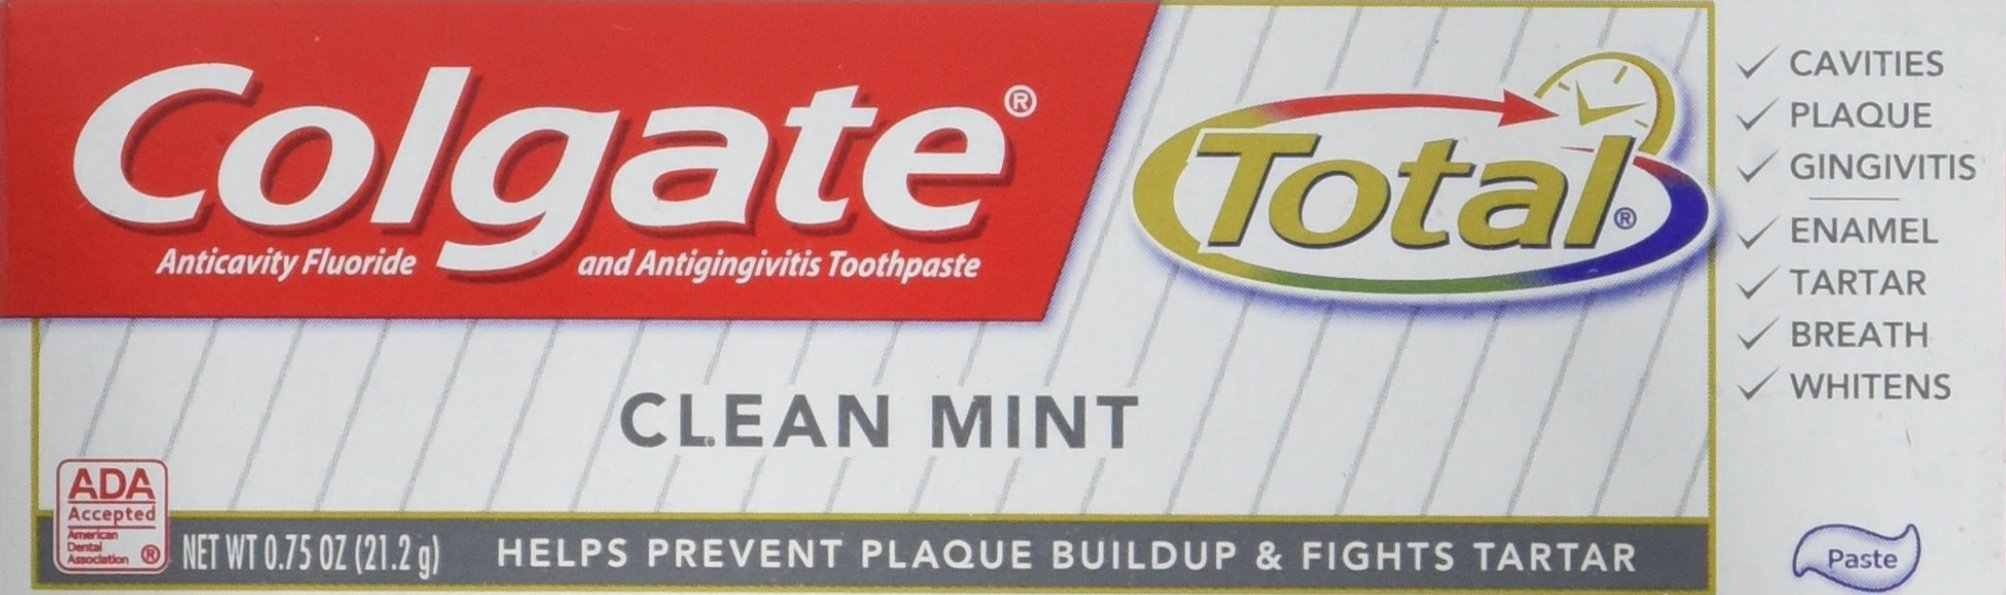 Colgate Total Toothpaste, Anticavity Fluoride and Antigingivitis, Clean Mint Travel Size, TSA Aproved, 0.75 Oz (Pack of 6)